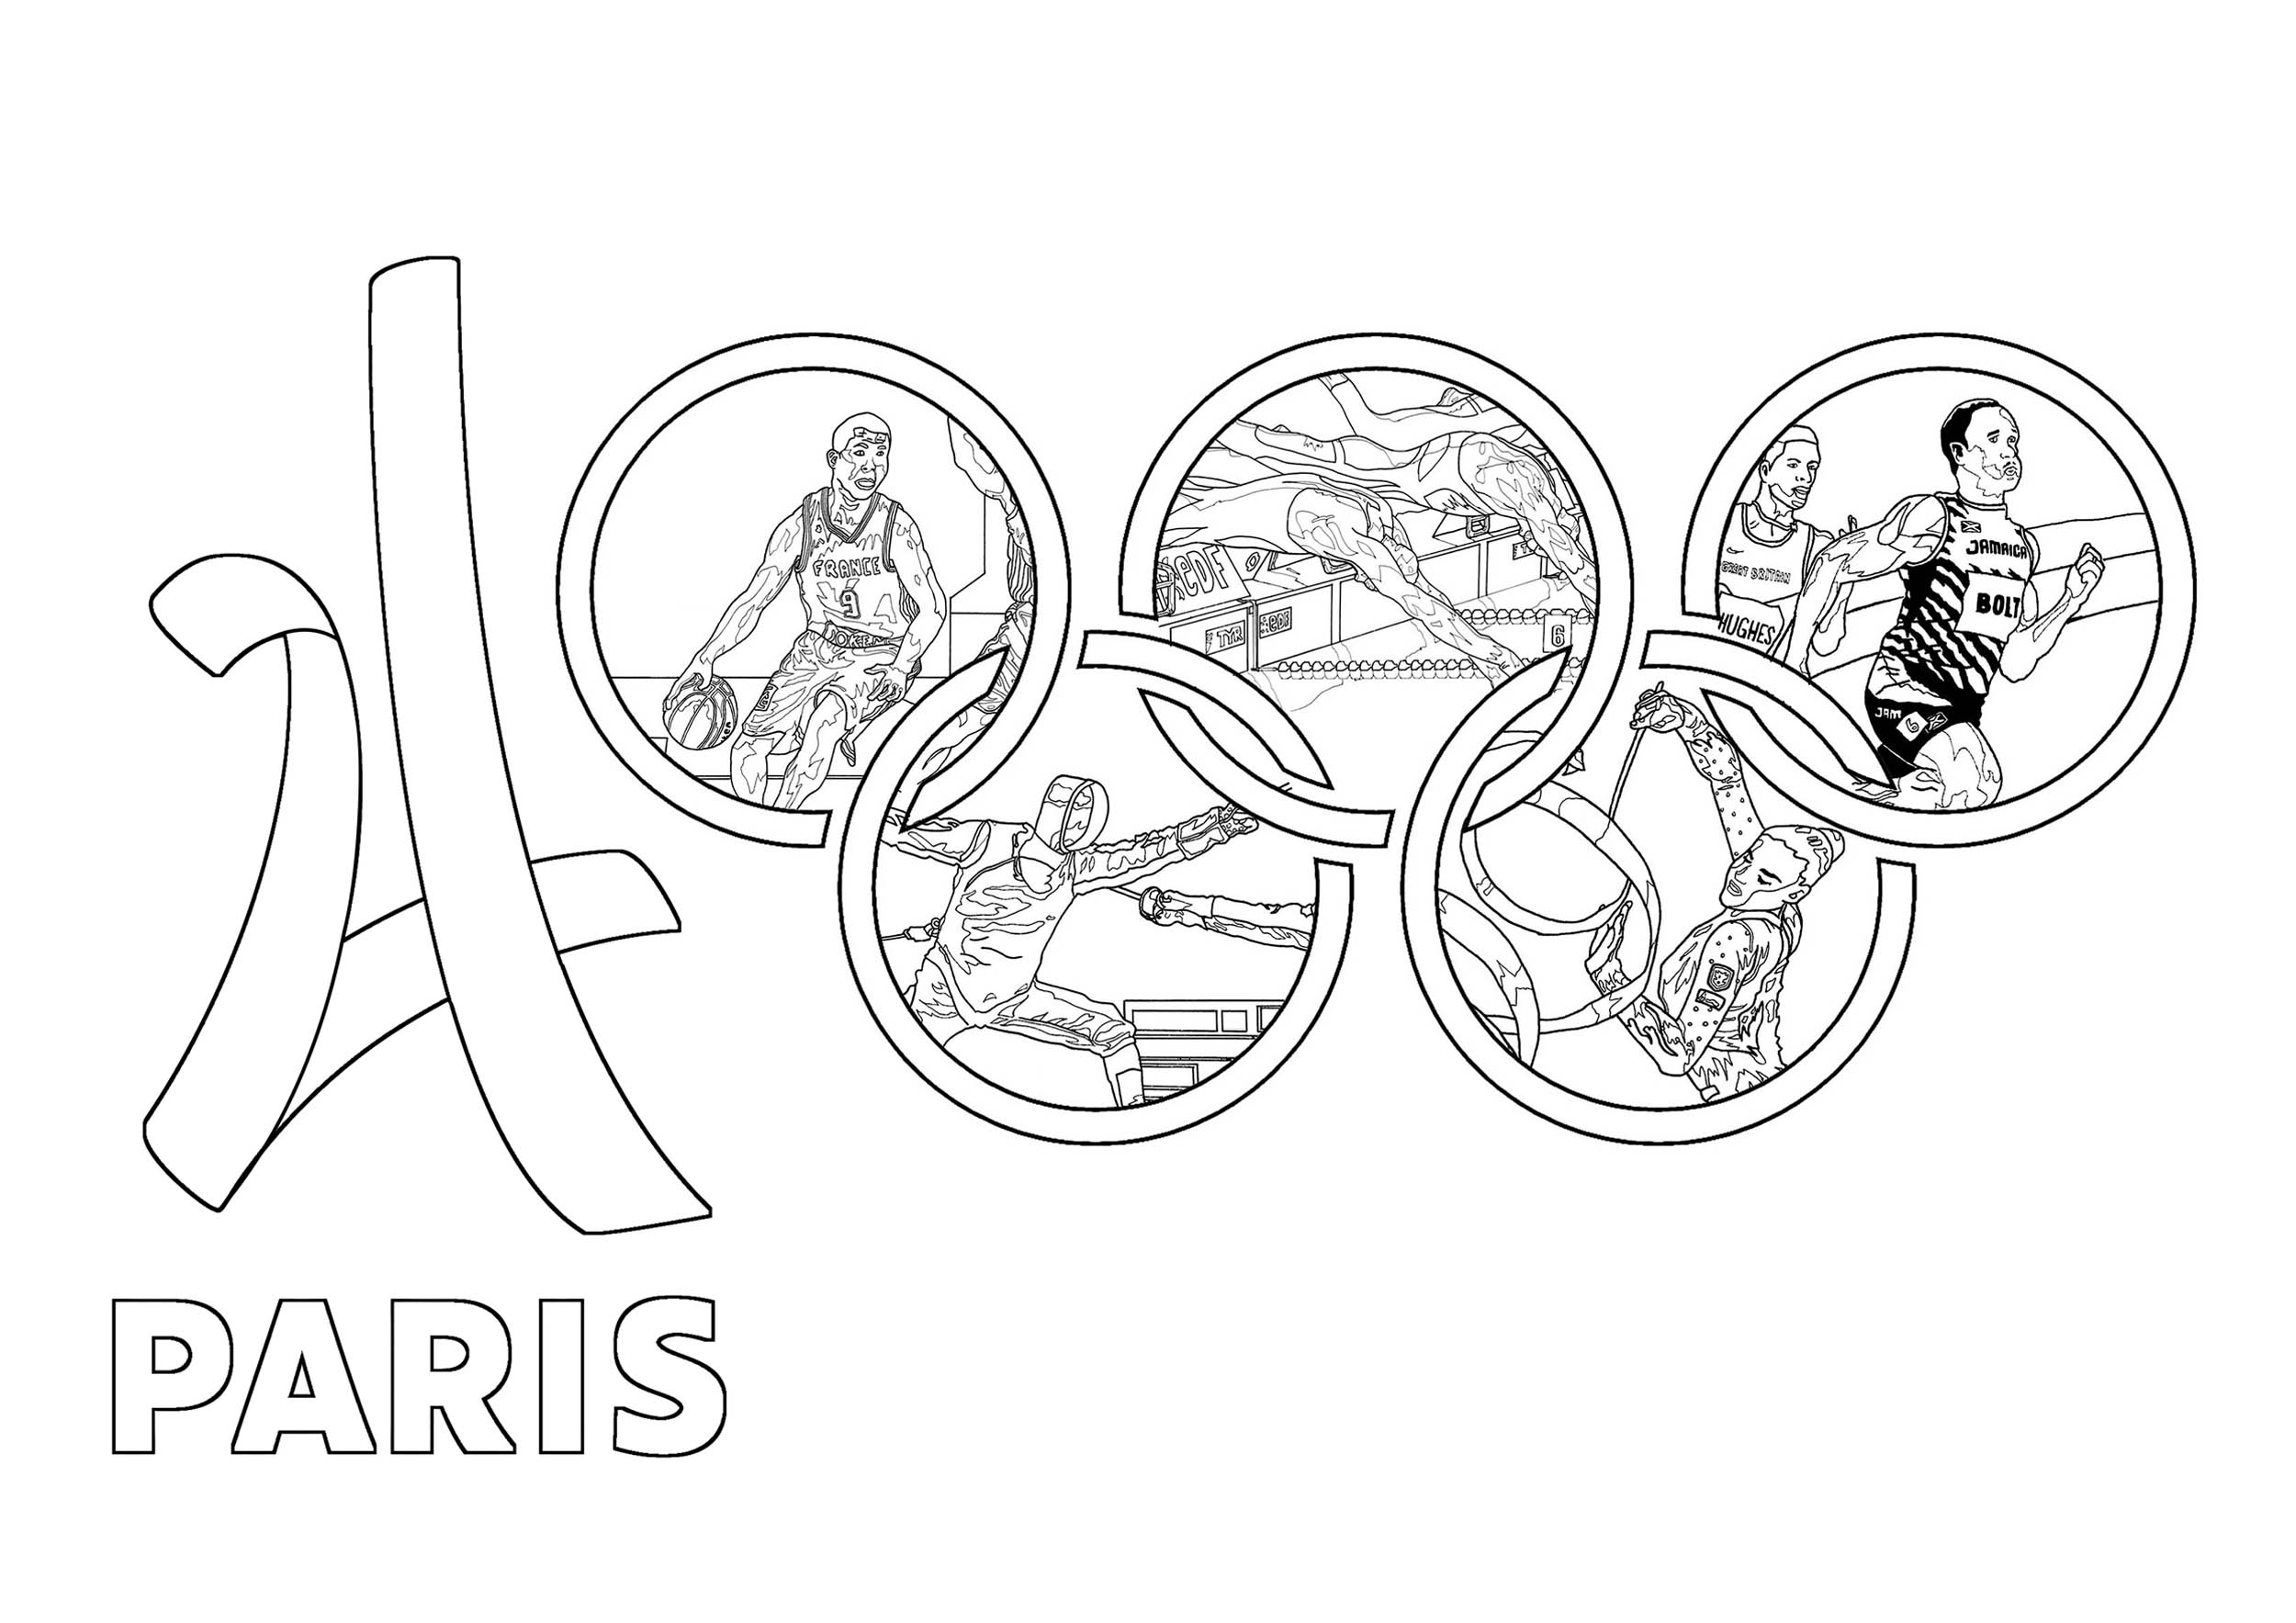 olympic games paris 2024 olympic sport adult coloring pages. Black Bedroom Furniture Sets. Home Design Ideas